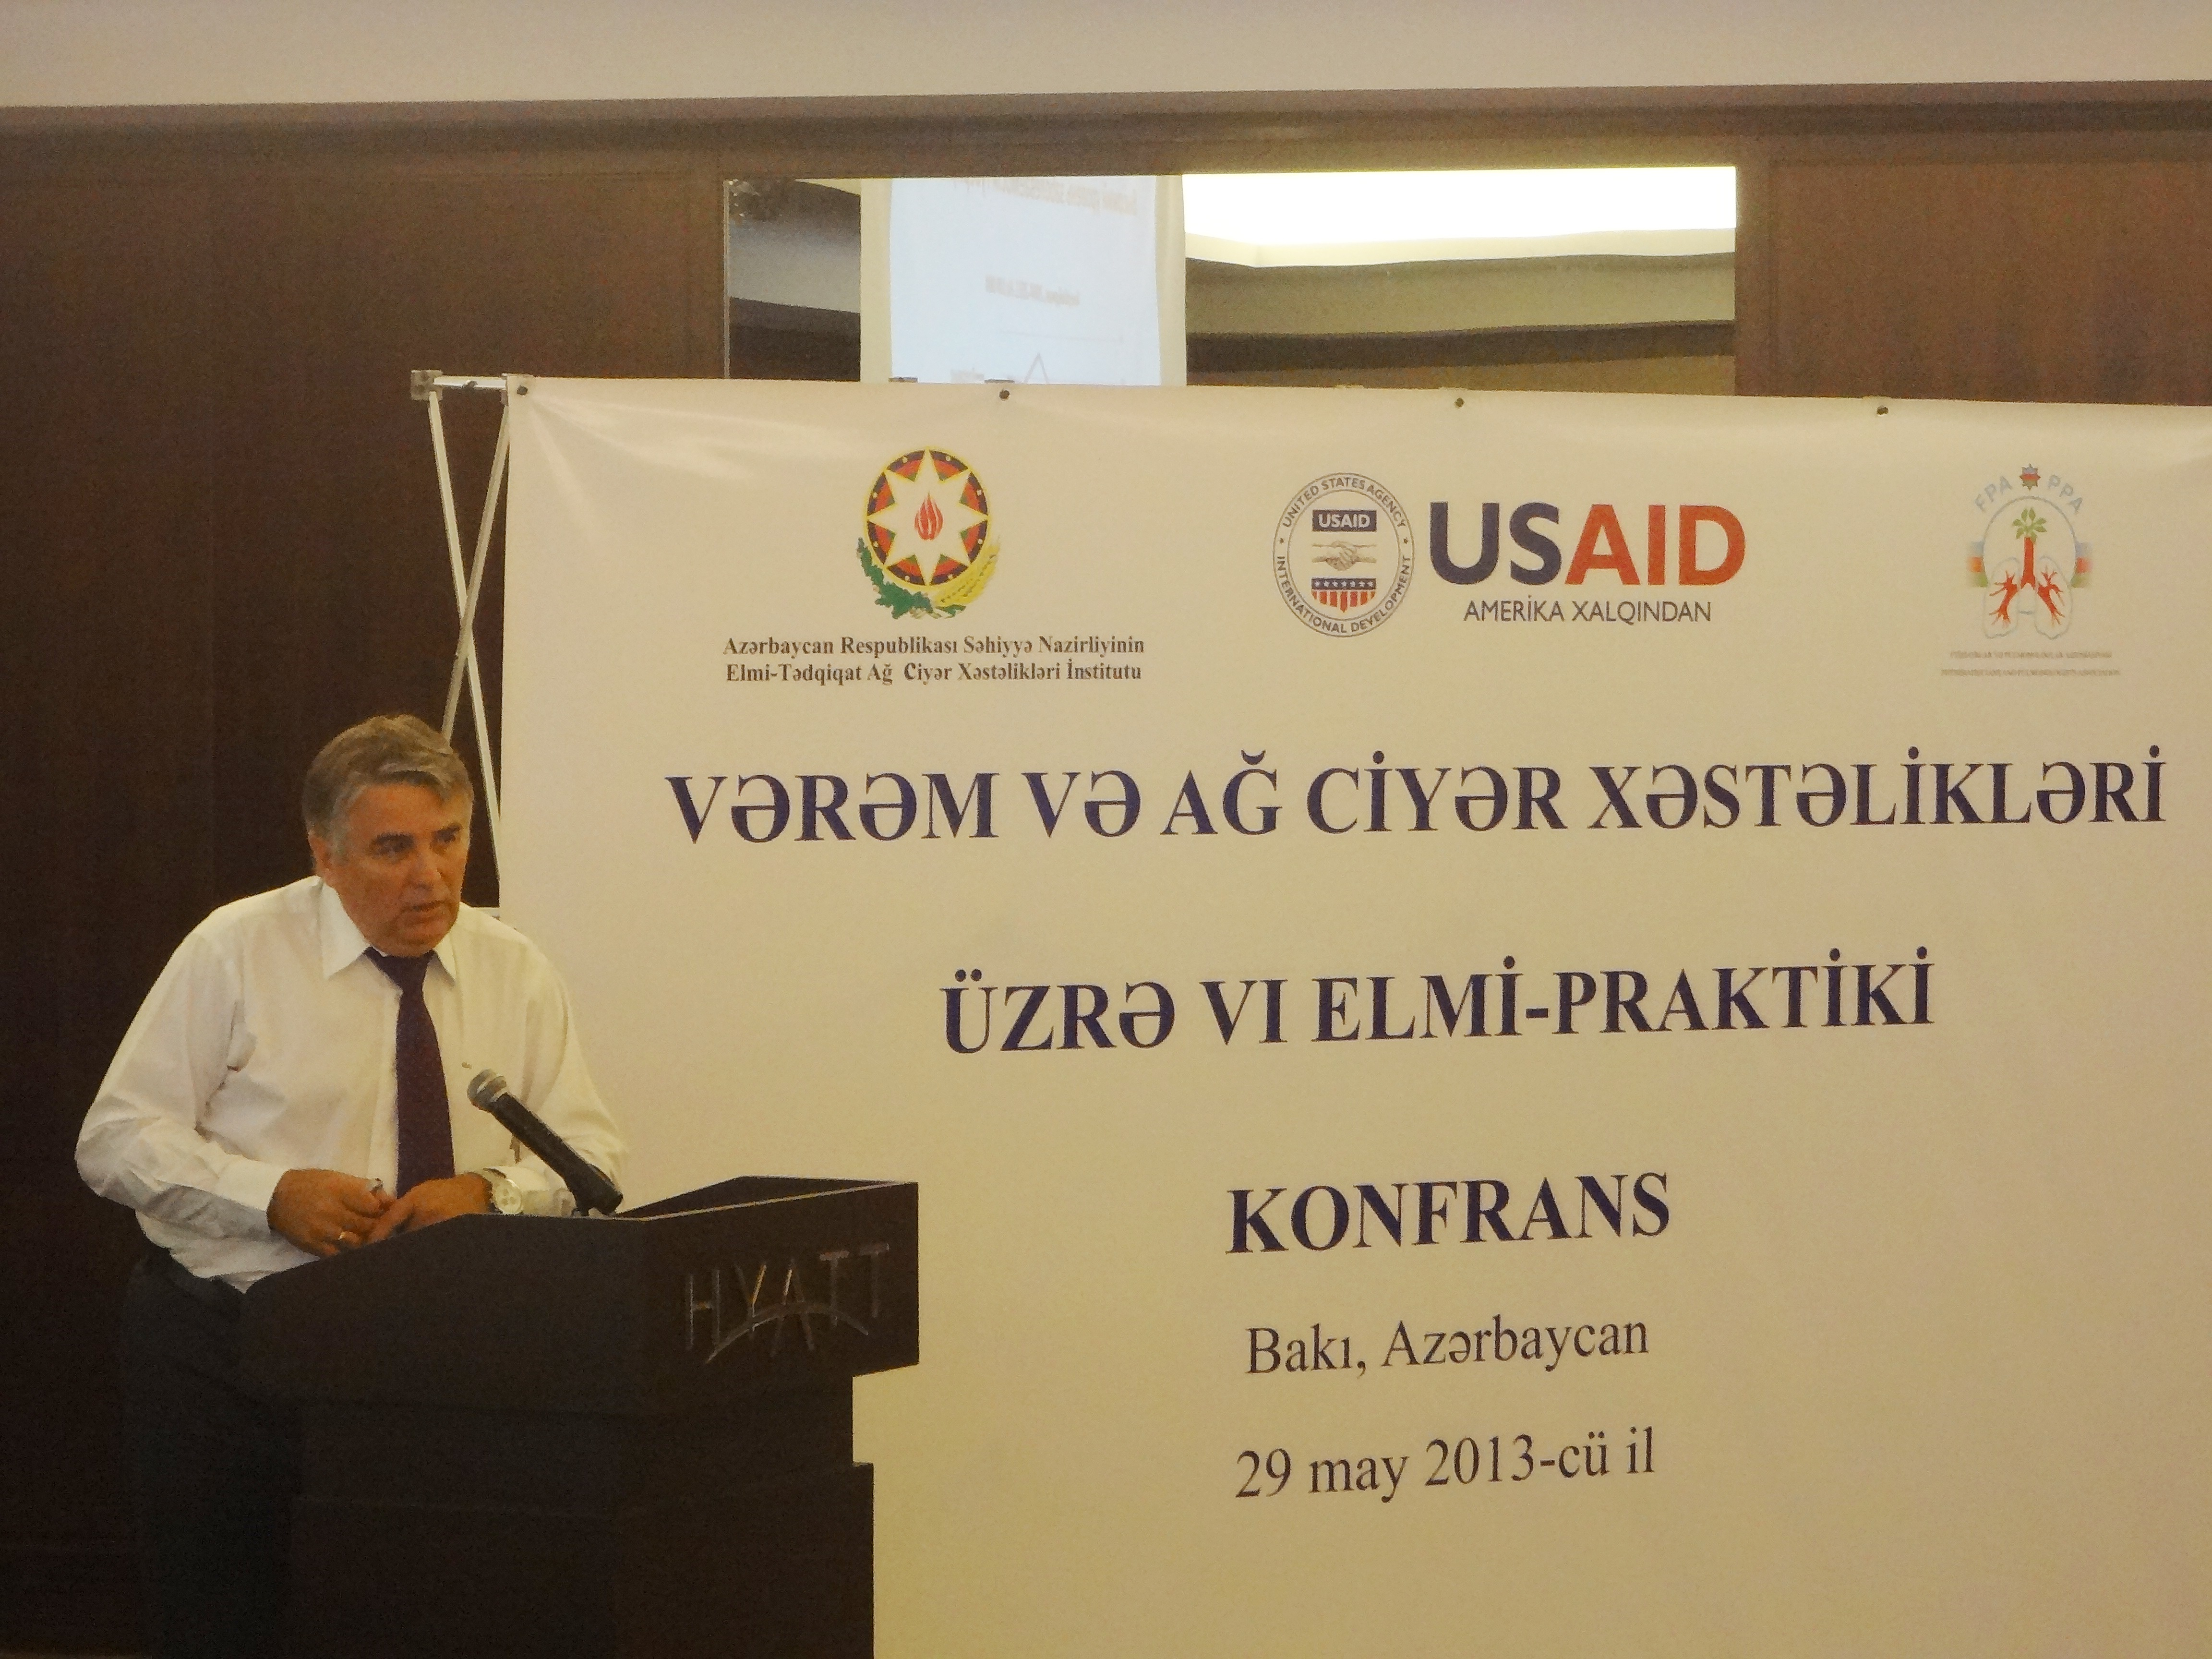 USAID Hands Over Tuberculosis Activities To Its National Partner In Azerbaijan